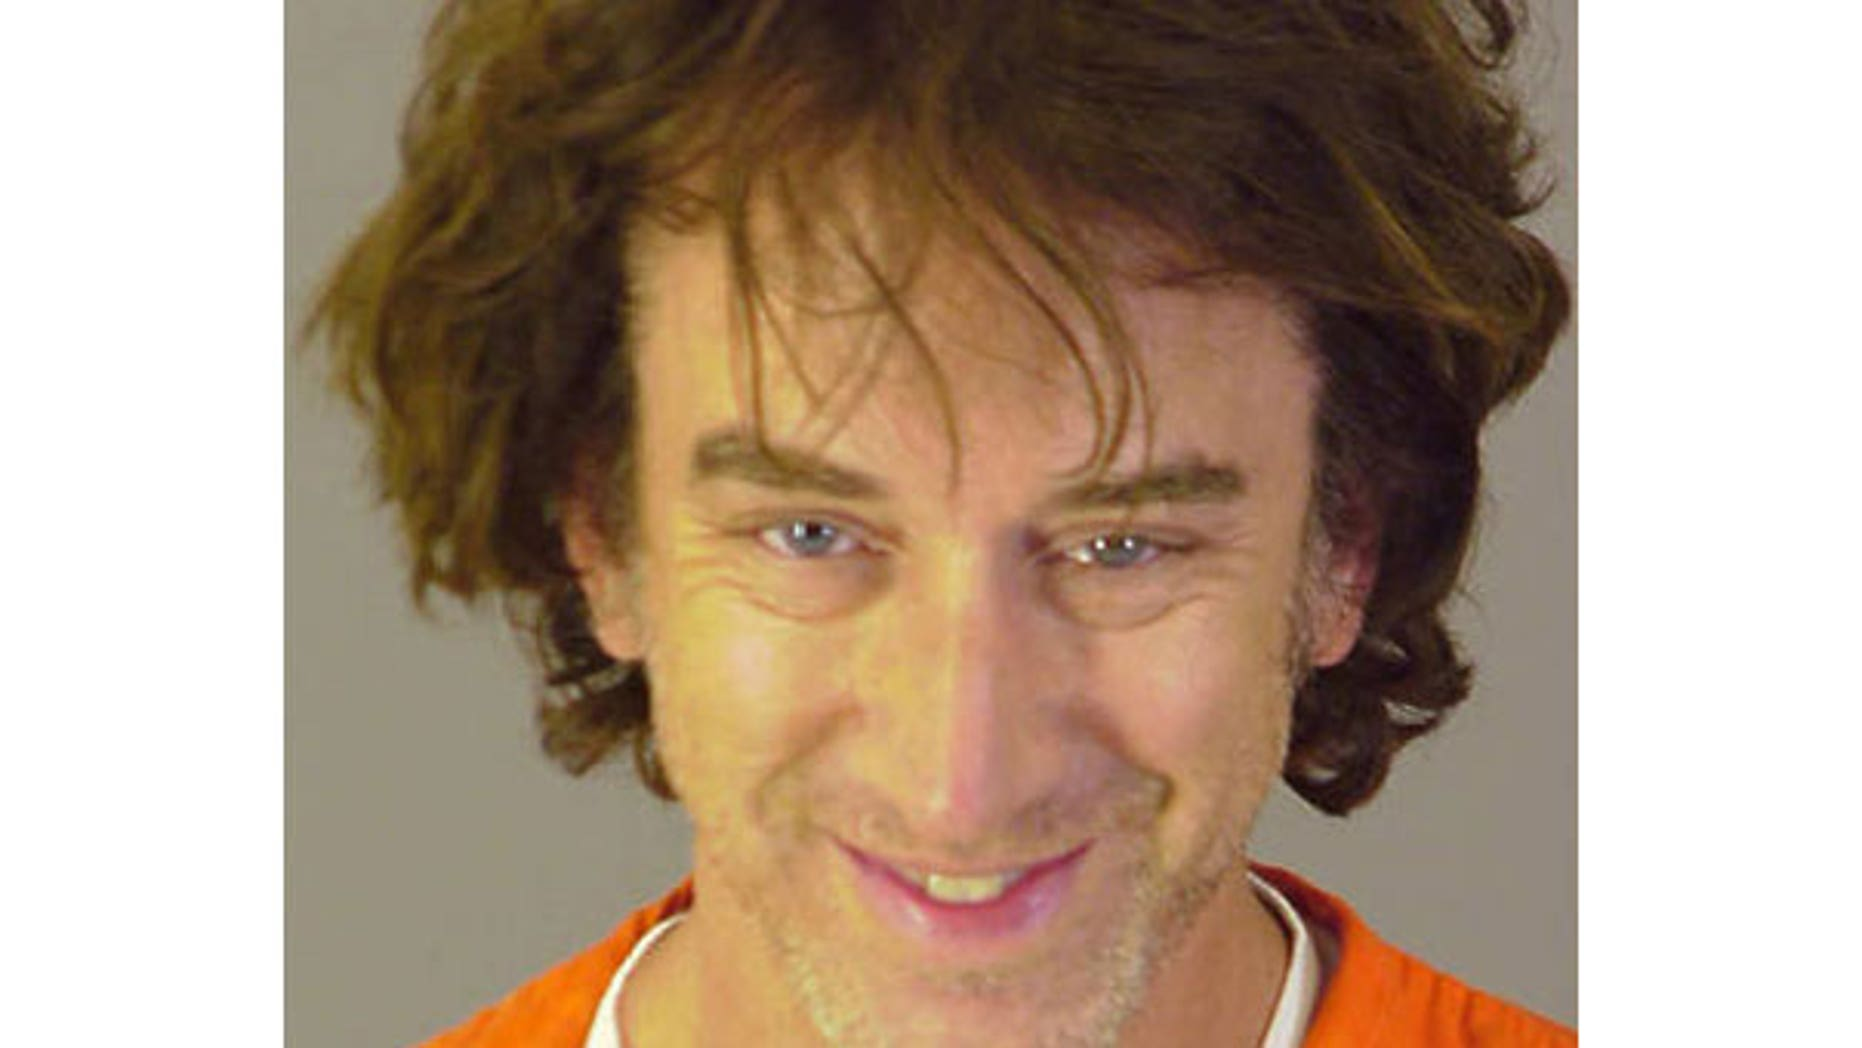 Andy Dick 2008 mugshot, after being arrested for suspicion of drug possession and sexual battery. (AP)